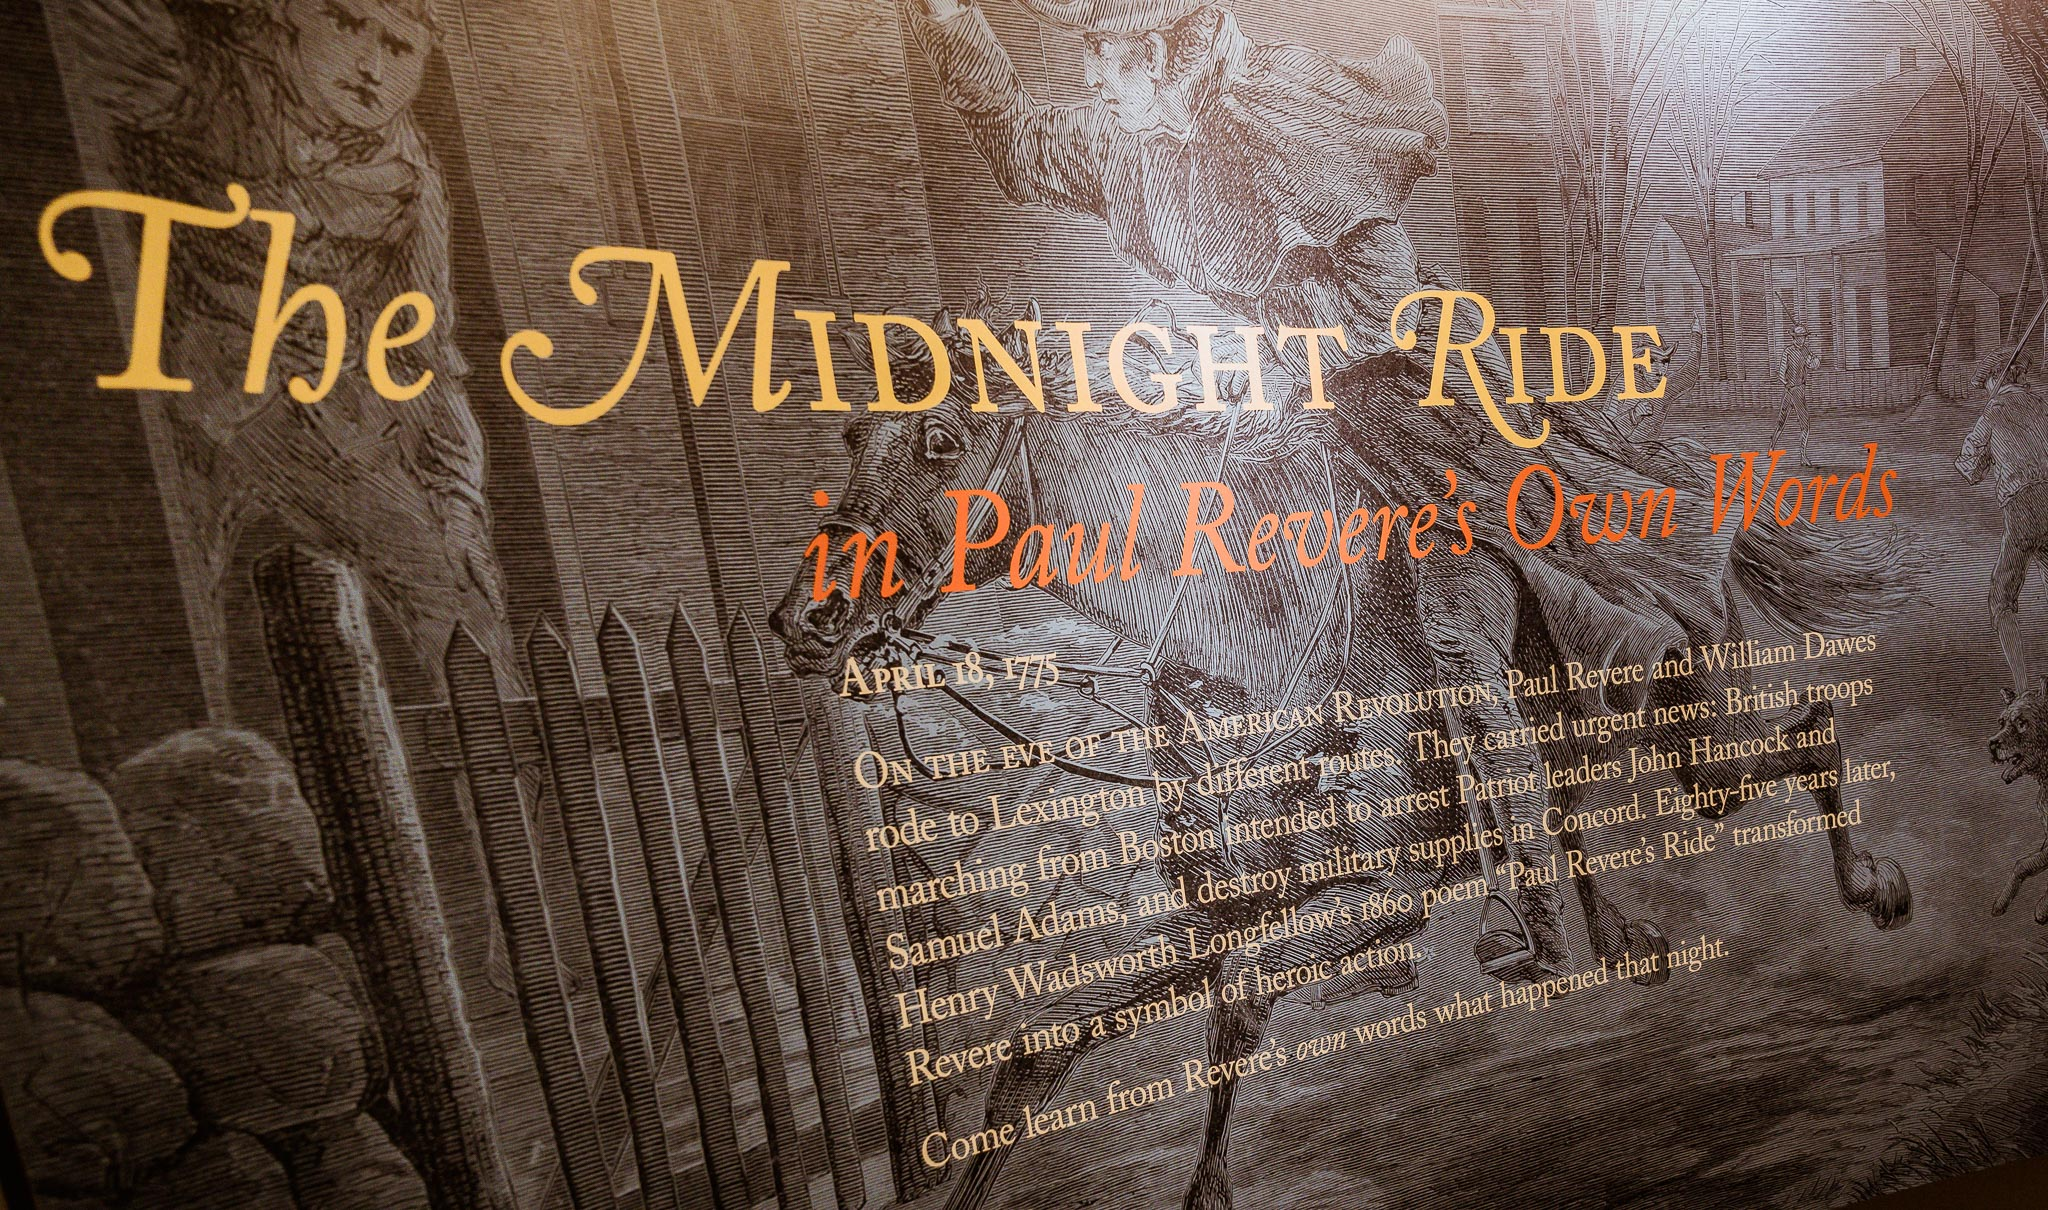 The Midnight Ride Exhibit